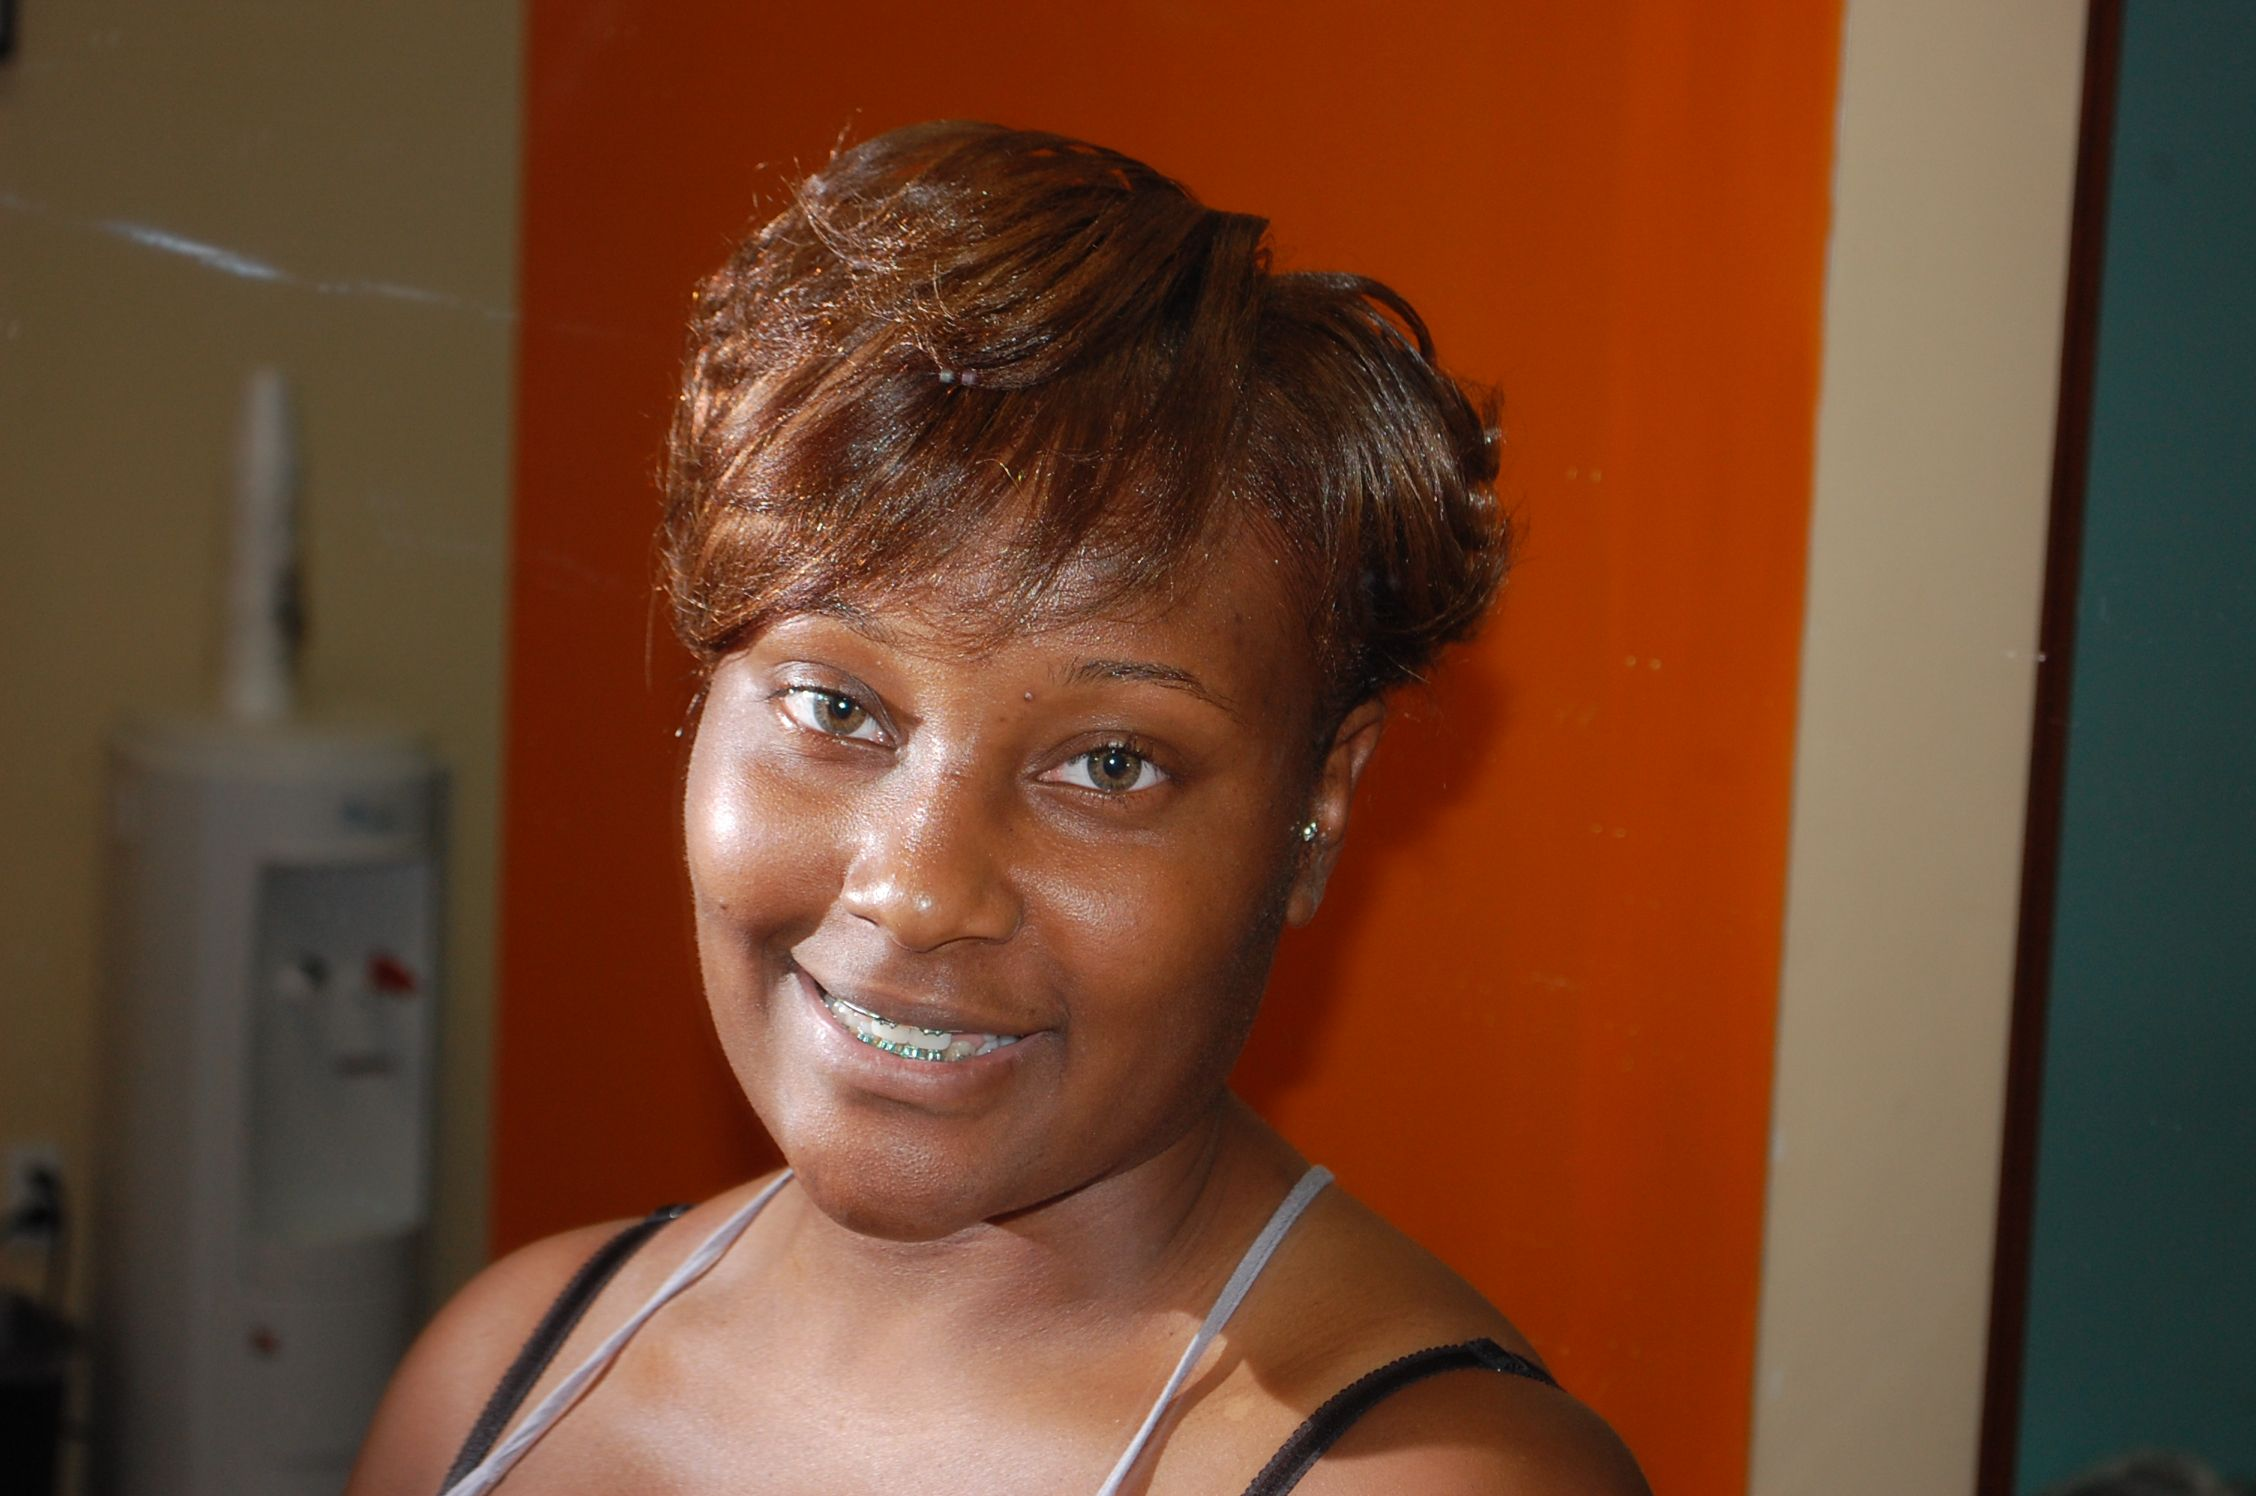 African American Hair Weaves Styles: Hair Highlights, Short Hairstyle For Black Women, African